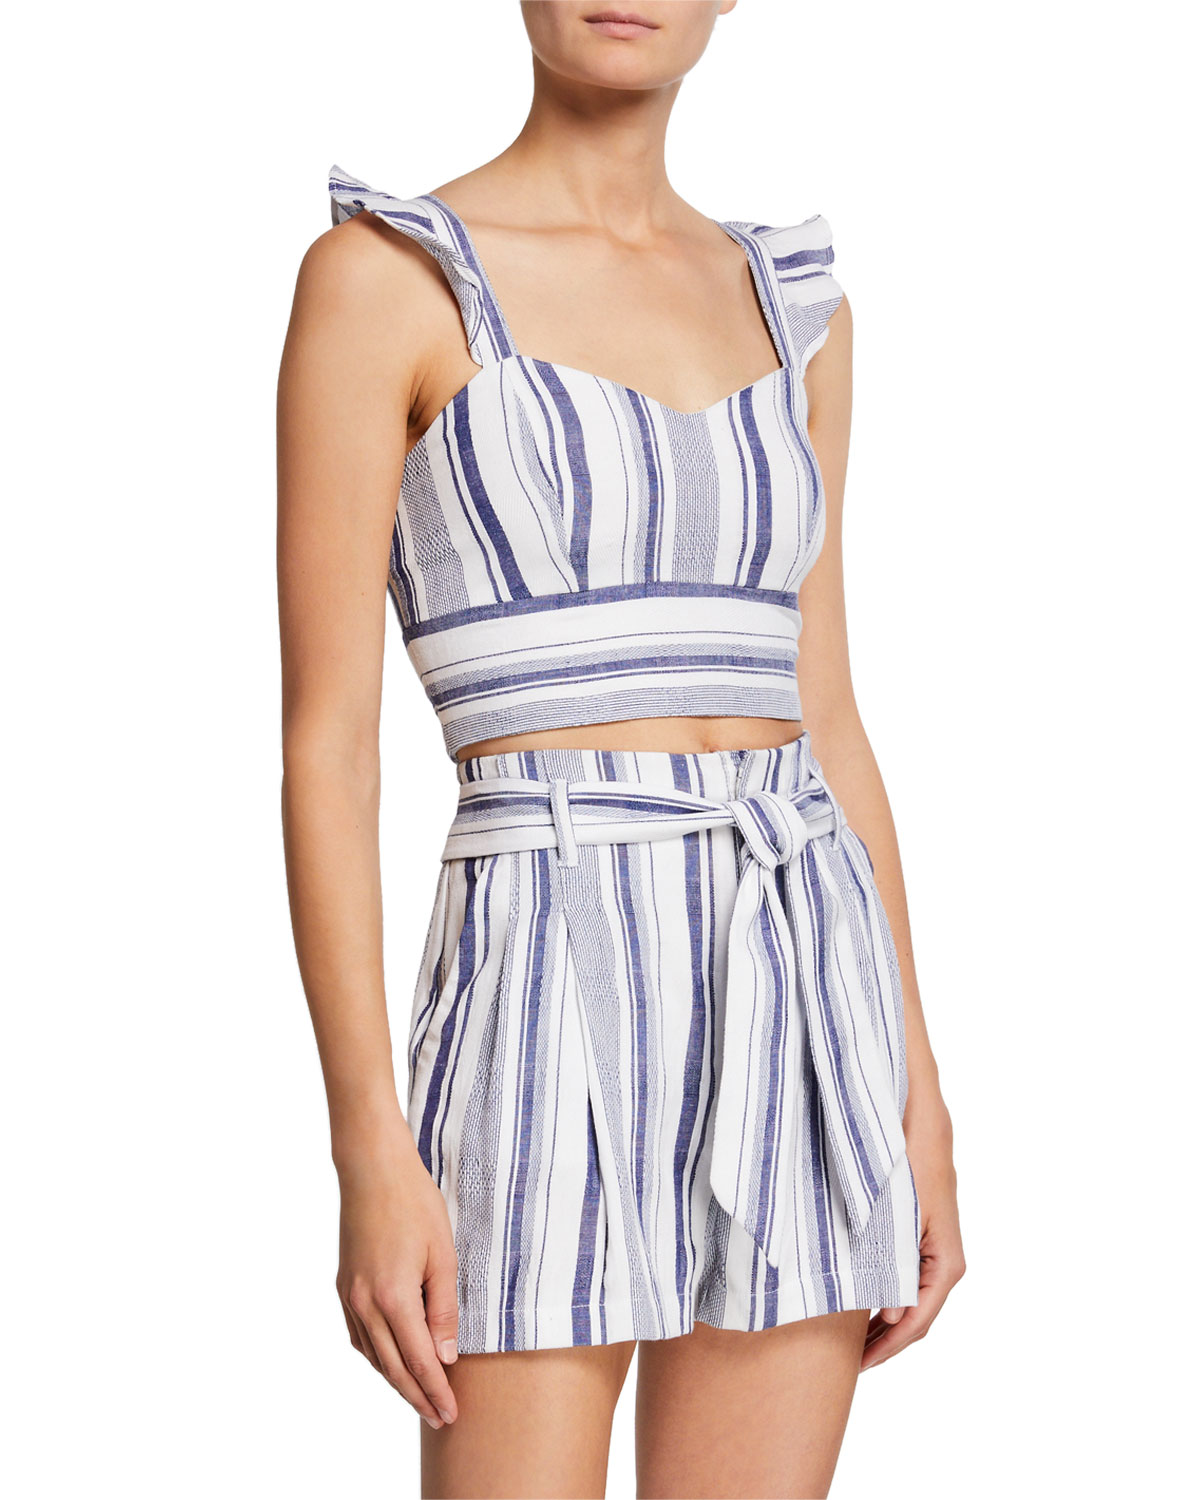 Parker Accessories Ibiza Sleeveless Striped Crop Top